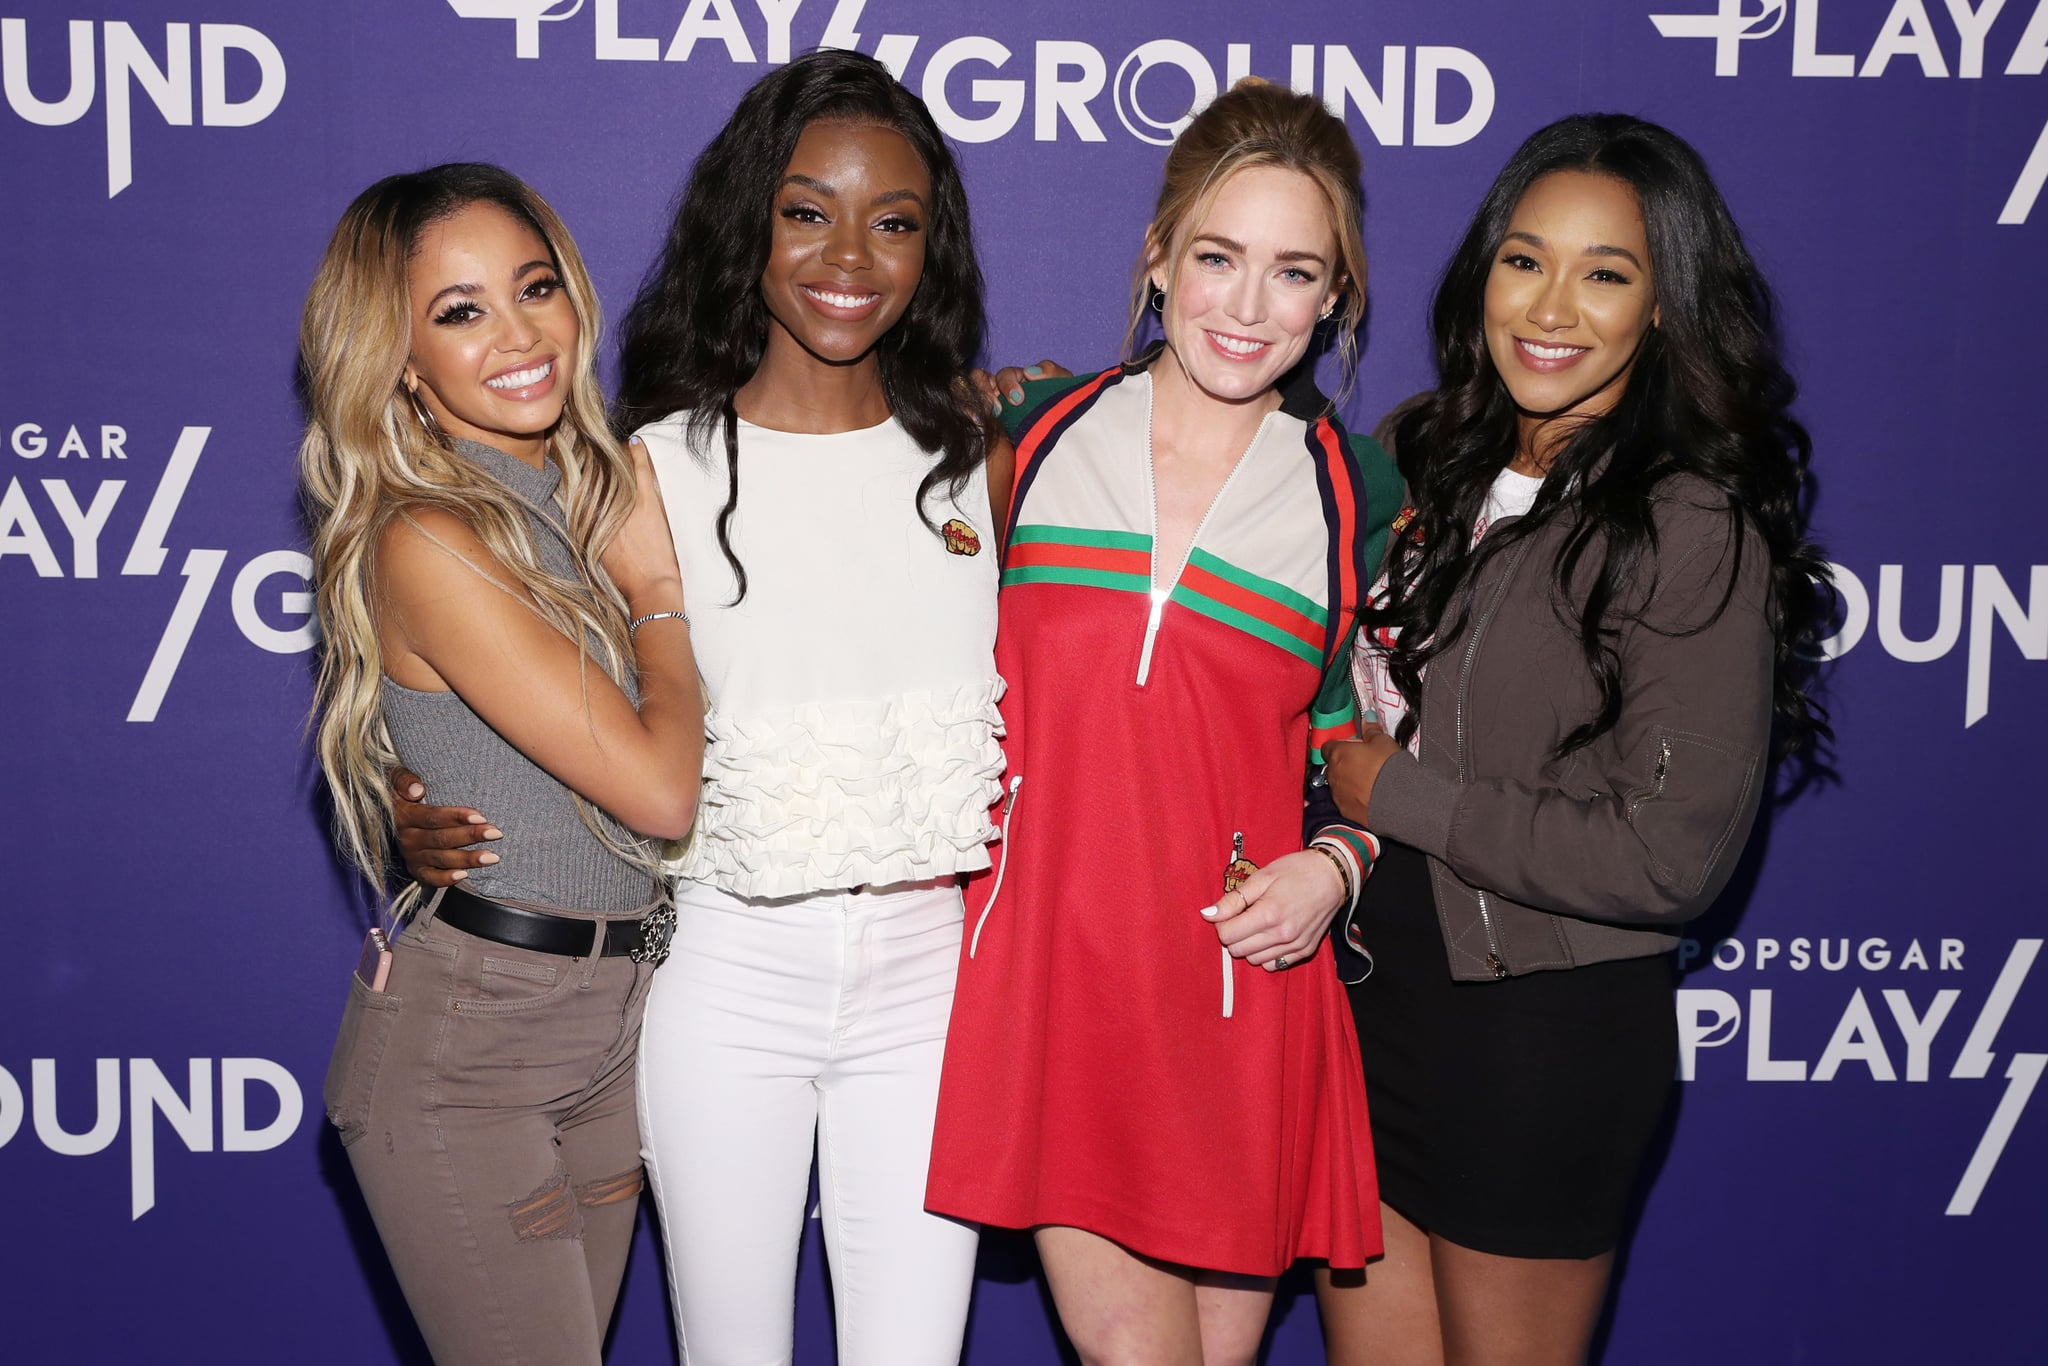 NEW YORK, NY - JUNE 10:  (L-R) Actresses Vanessa Morgan, Ashleigh Murray, Caity Lotz, and Candice Patton attend day 2 of POPSUGAR Play/Ground on June 10, 2018 in New York City.  (Photo by Cindy Ord/Getty Images for POPSUGAR Play/Ground)